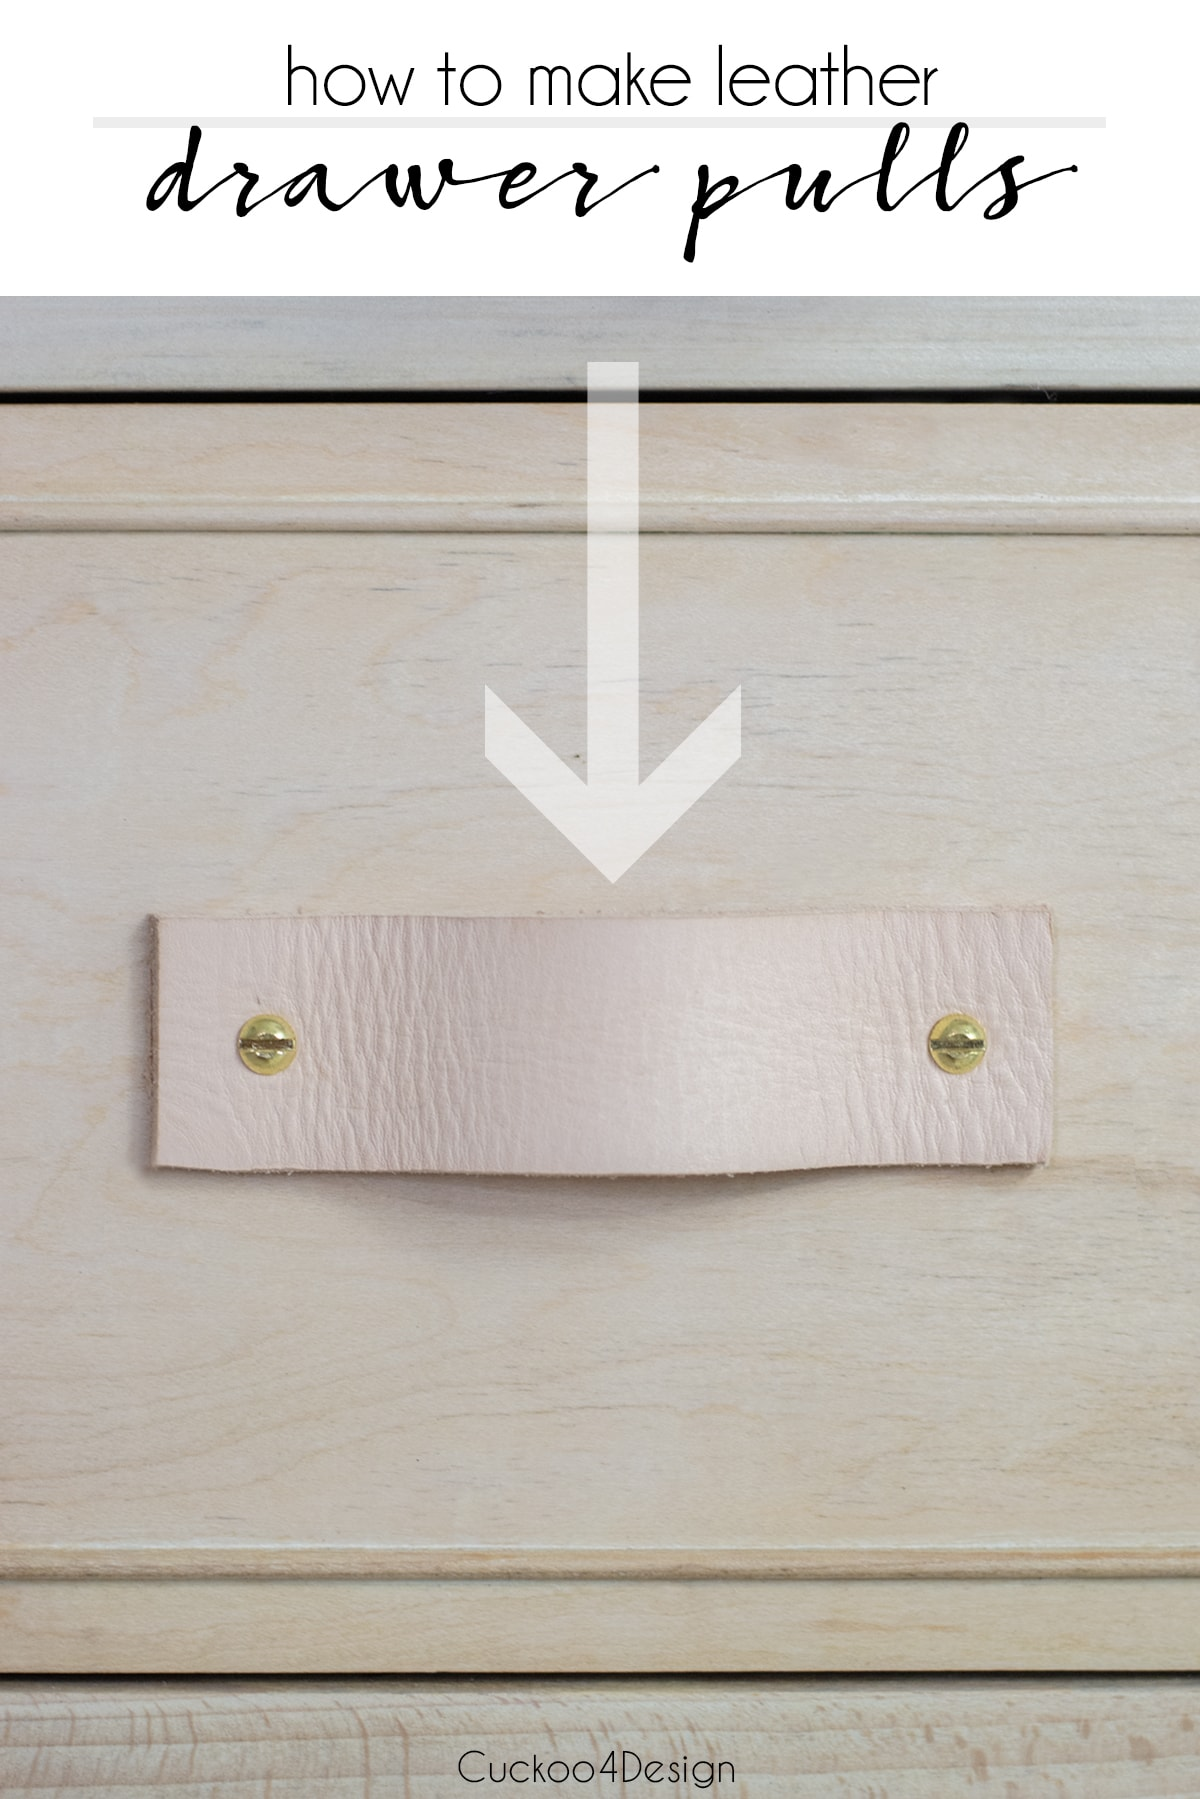 how to make leather drawer pulls